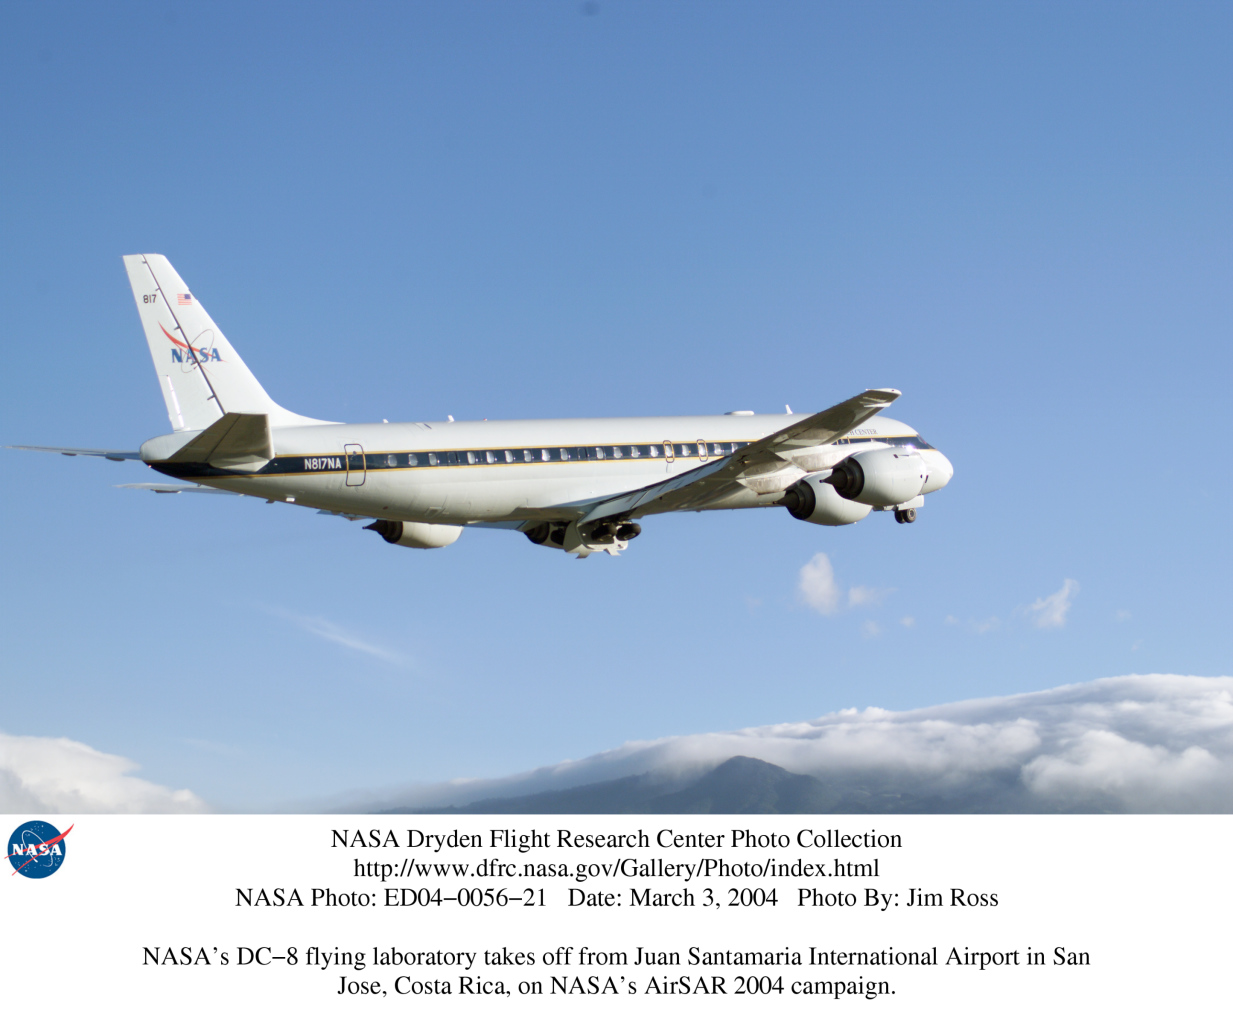 NASA Dryden DC-8 Photo Collection